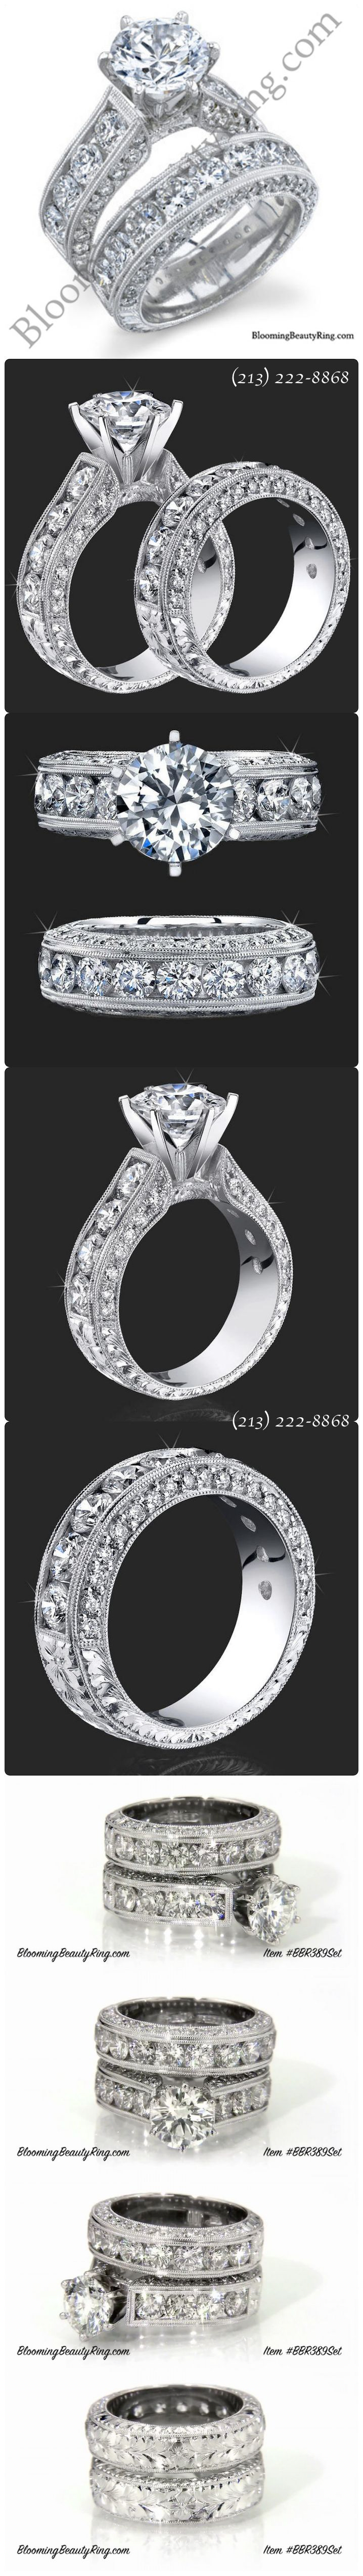 """http://rubies.work/0099-ruby-rings/ (Click on the picture to see this ring in HD video on our website) This hand-made engagement ring set is almost beyond description! Each ring has over 2 carats of top quality """"accent diamonds"""" alone! Pictures show a 2 carat center stone making the rings = 6.10 ctw. (Queen Elizabeth herself would be jealous!!) (213) 222-8868 BloomingBeautyRing.com"""